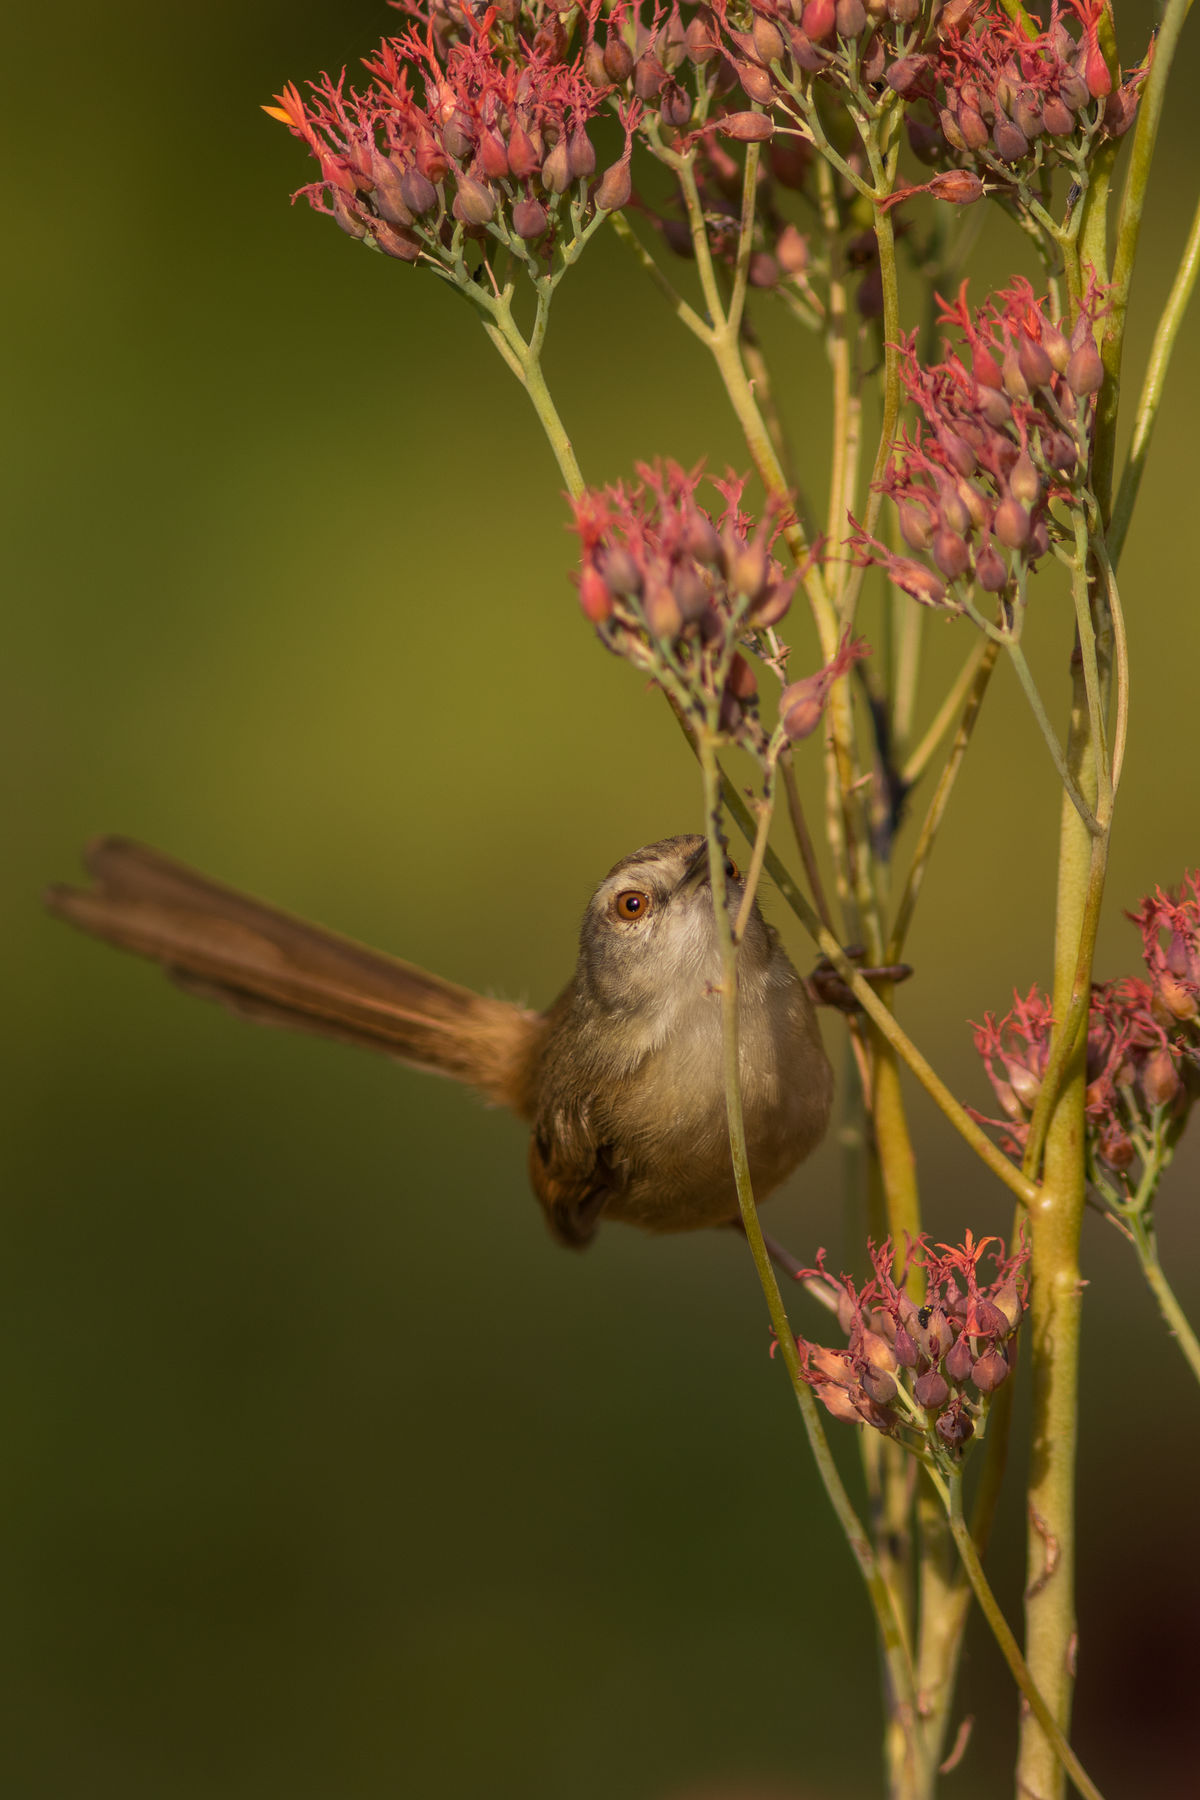 Tawny flanked prinia on pink wild flowers Animal Themes Animals In The Wild Beauty In Nature Close-up Day Flower Flower Head Fragility Freshness Growth Hummingbird Mammal Nature No People One Animal Outdoors Plant Pollination Prinia Tawny Flanked Prinia